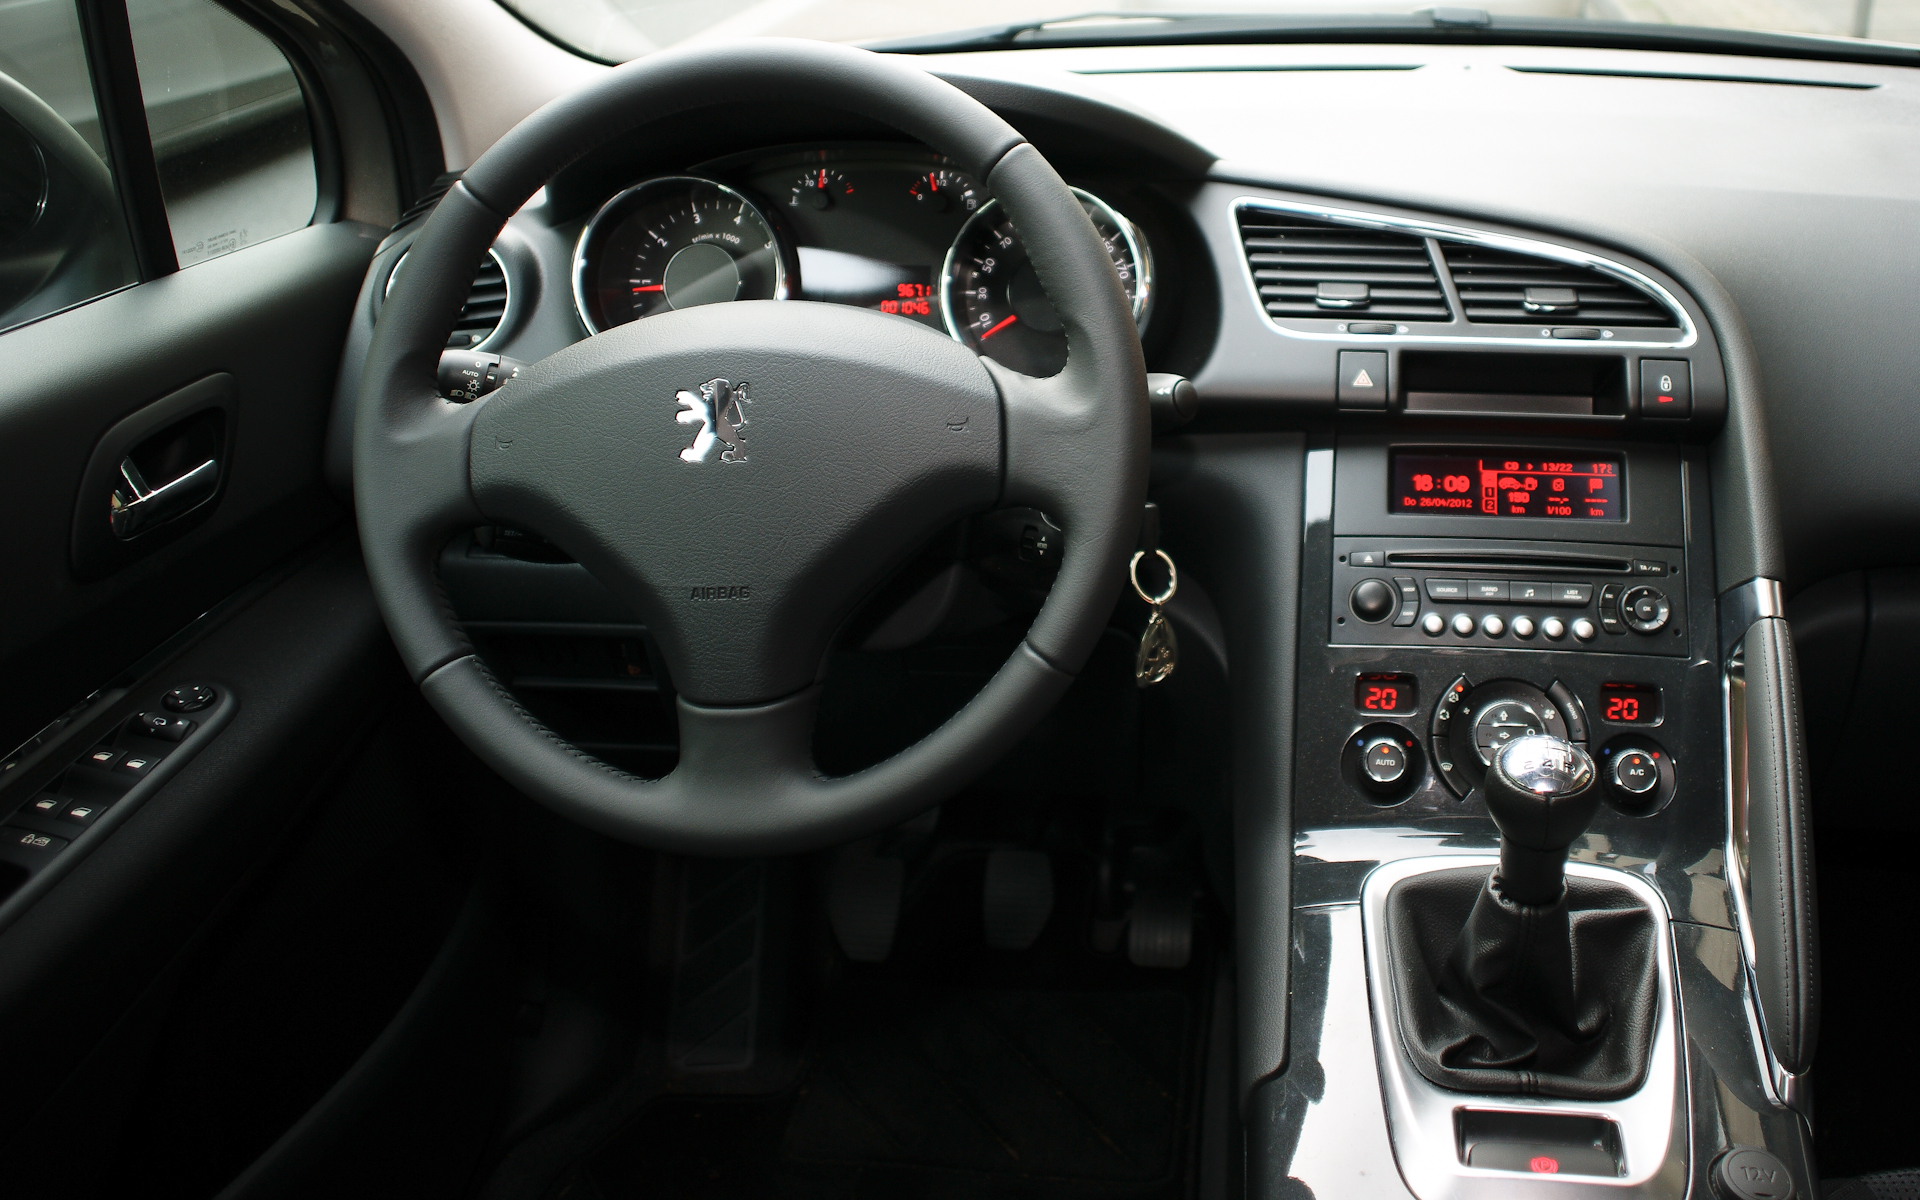 The dashboard design and layout